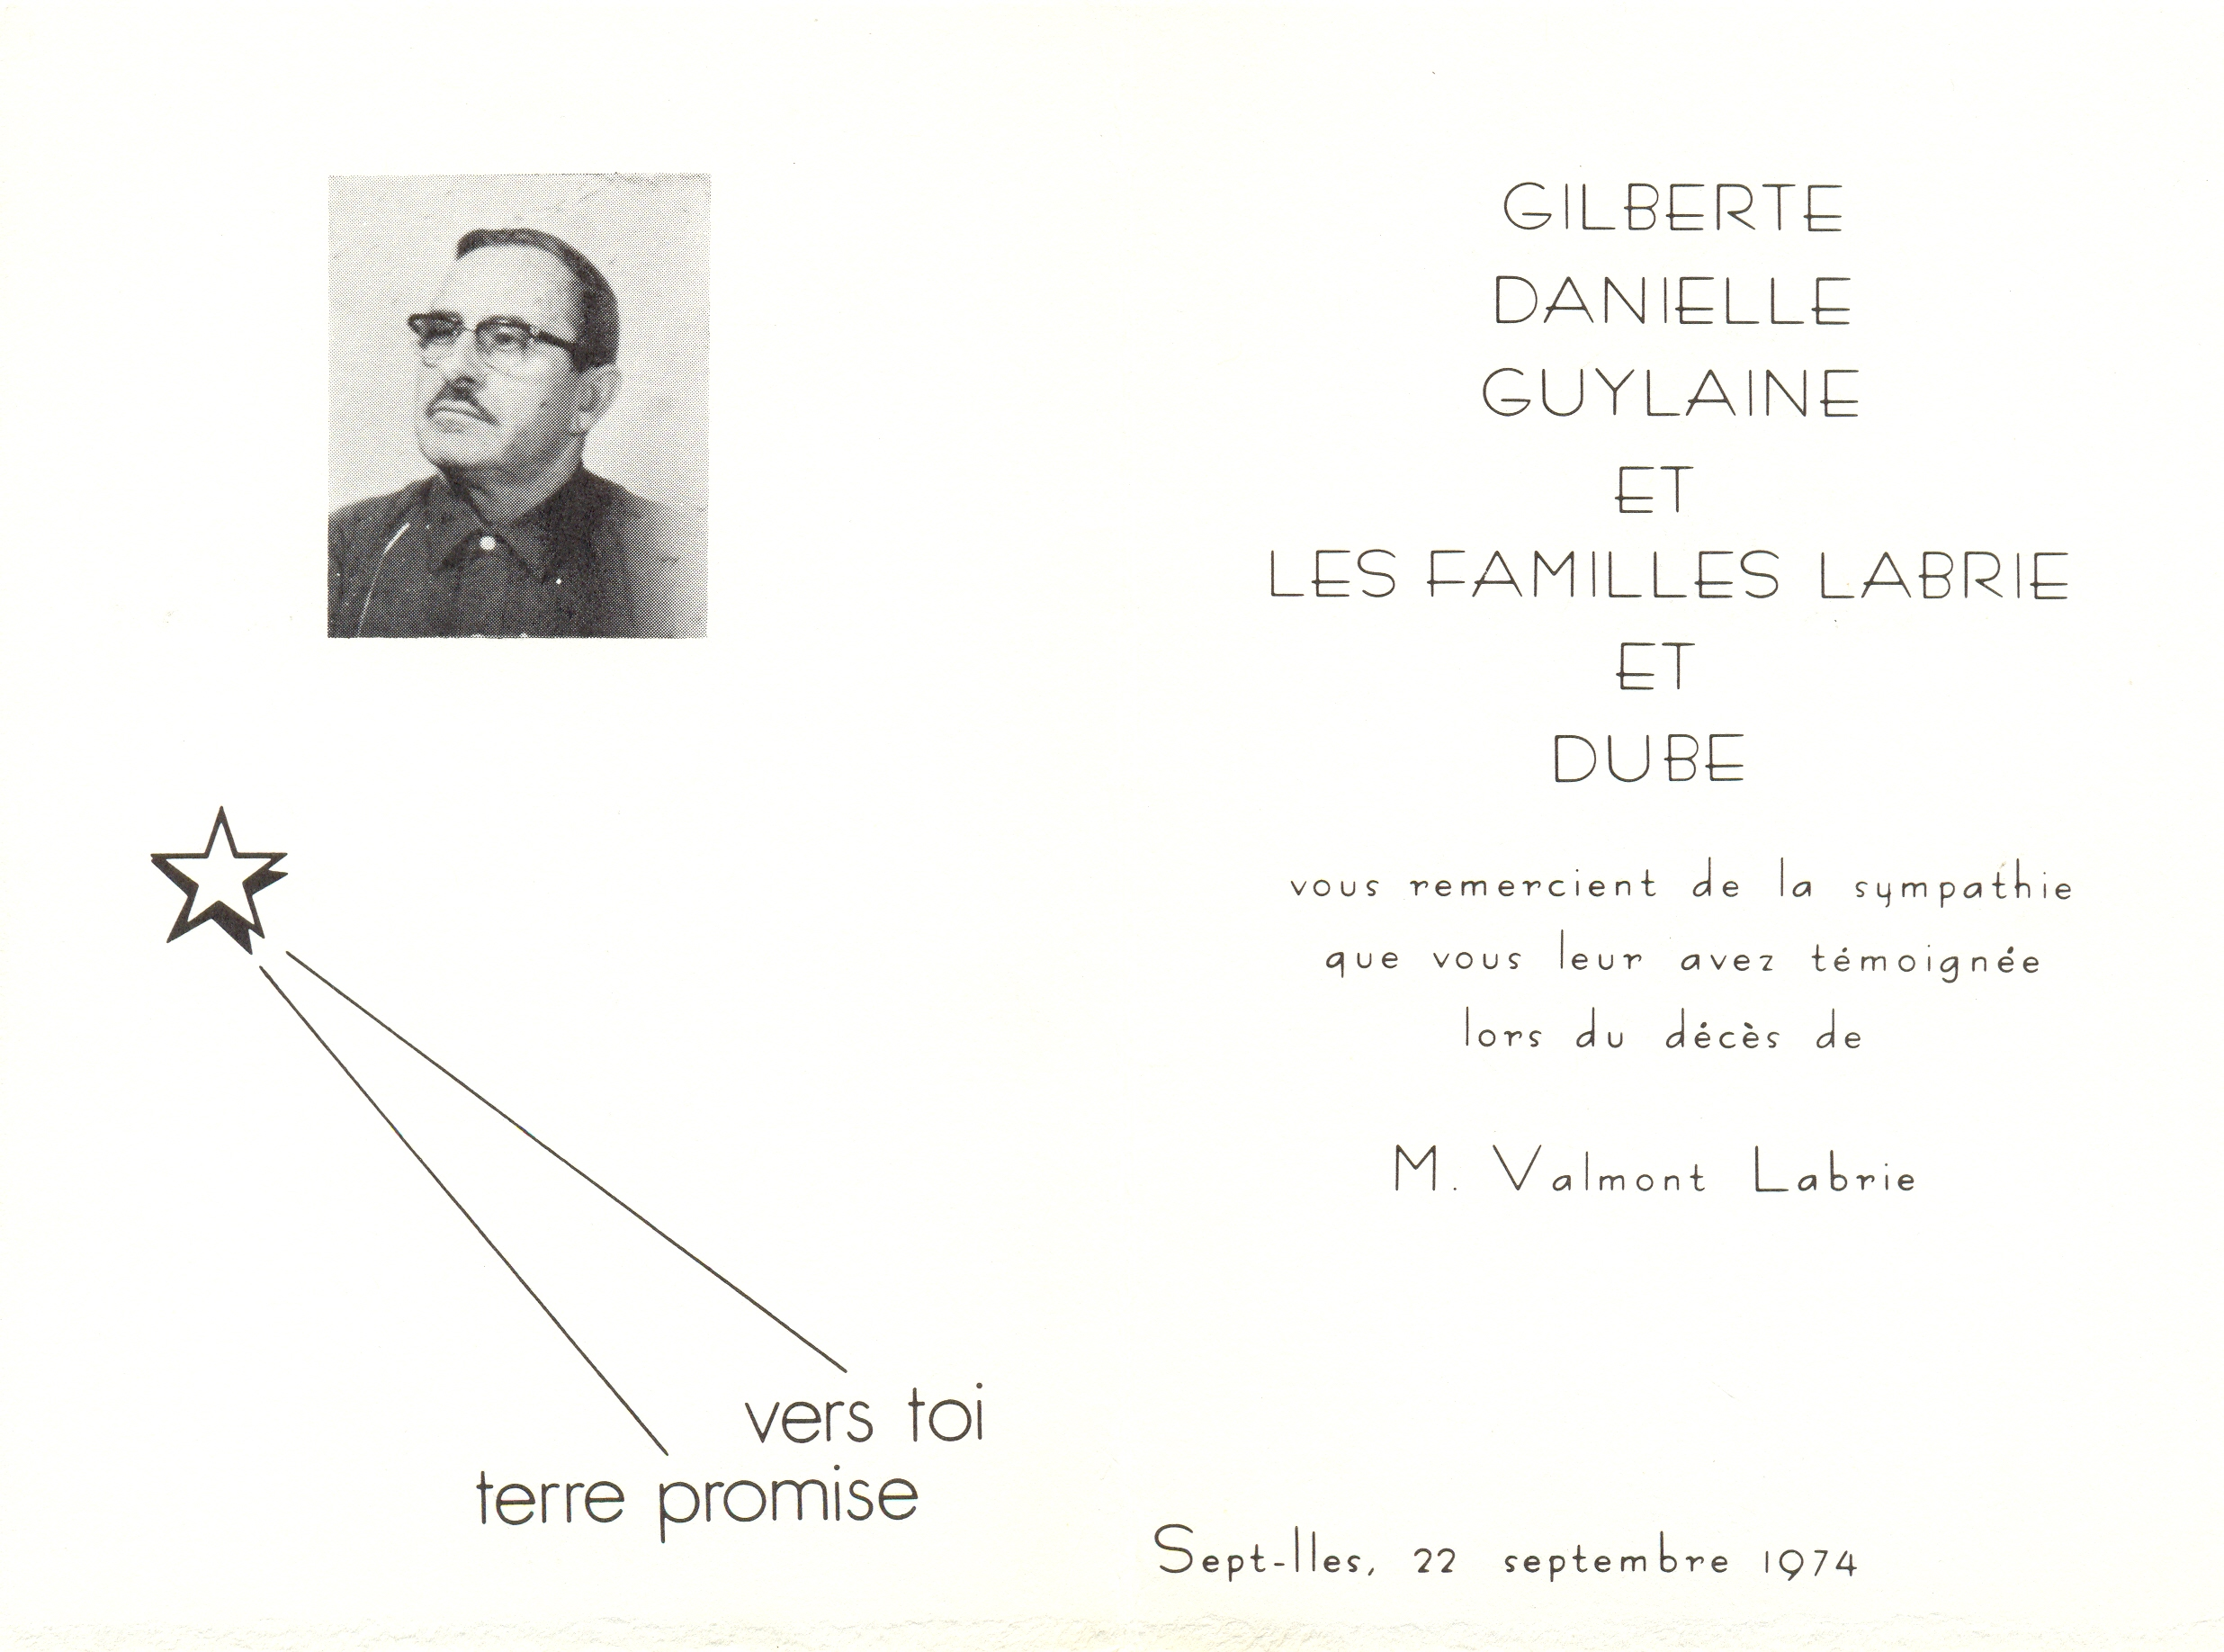 Valmont Labrie 1918-1974